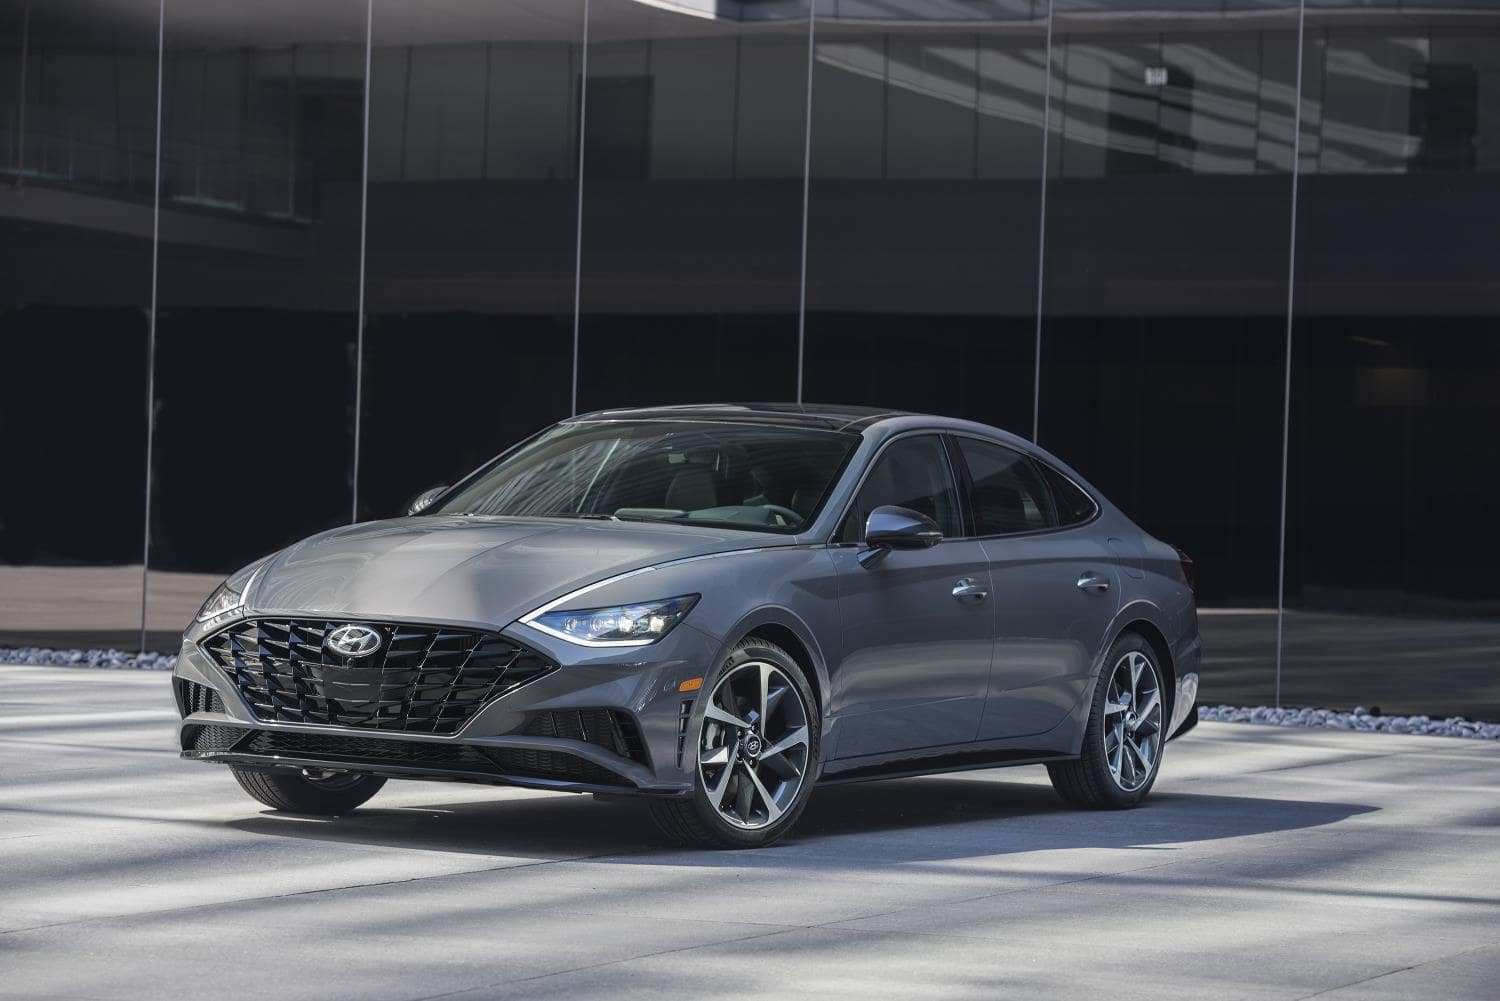 20 Best New York Auto Show 2020 Hyundai Review